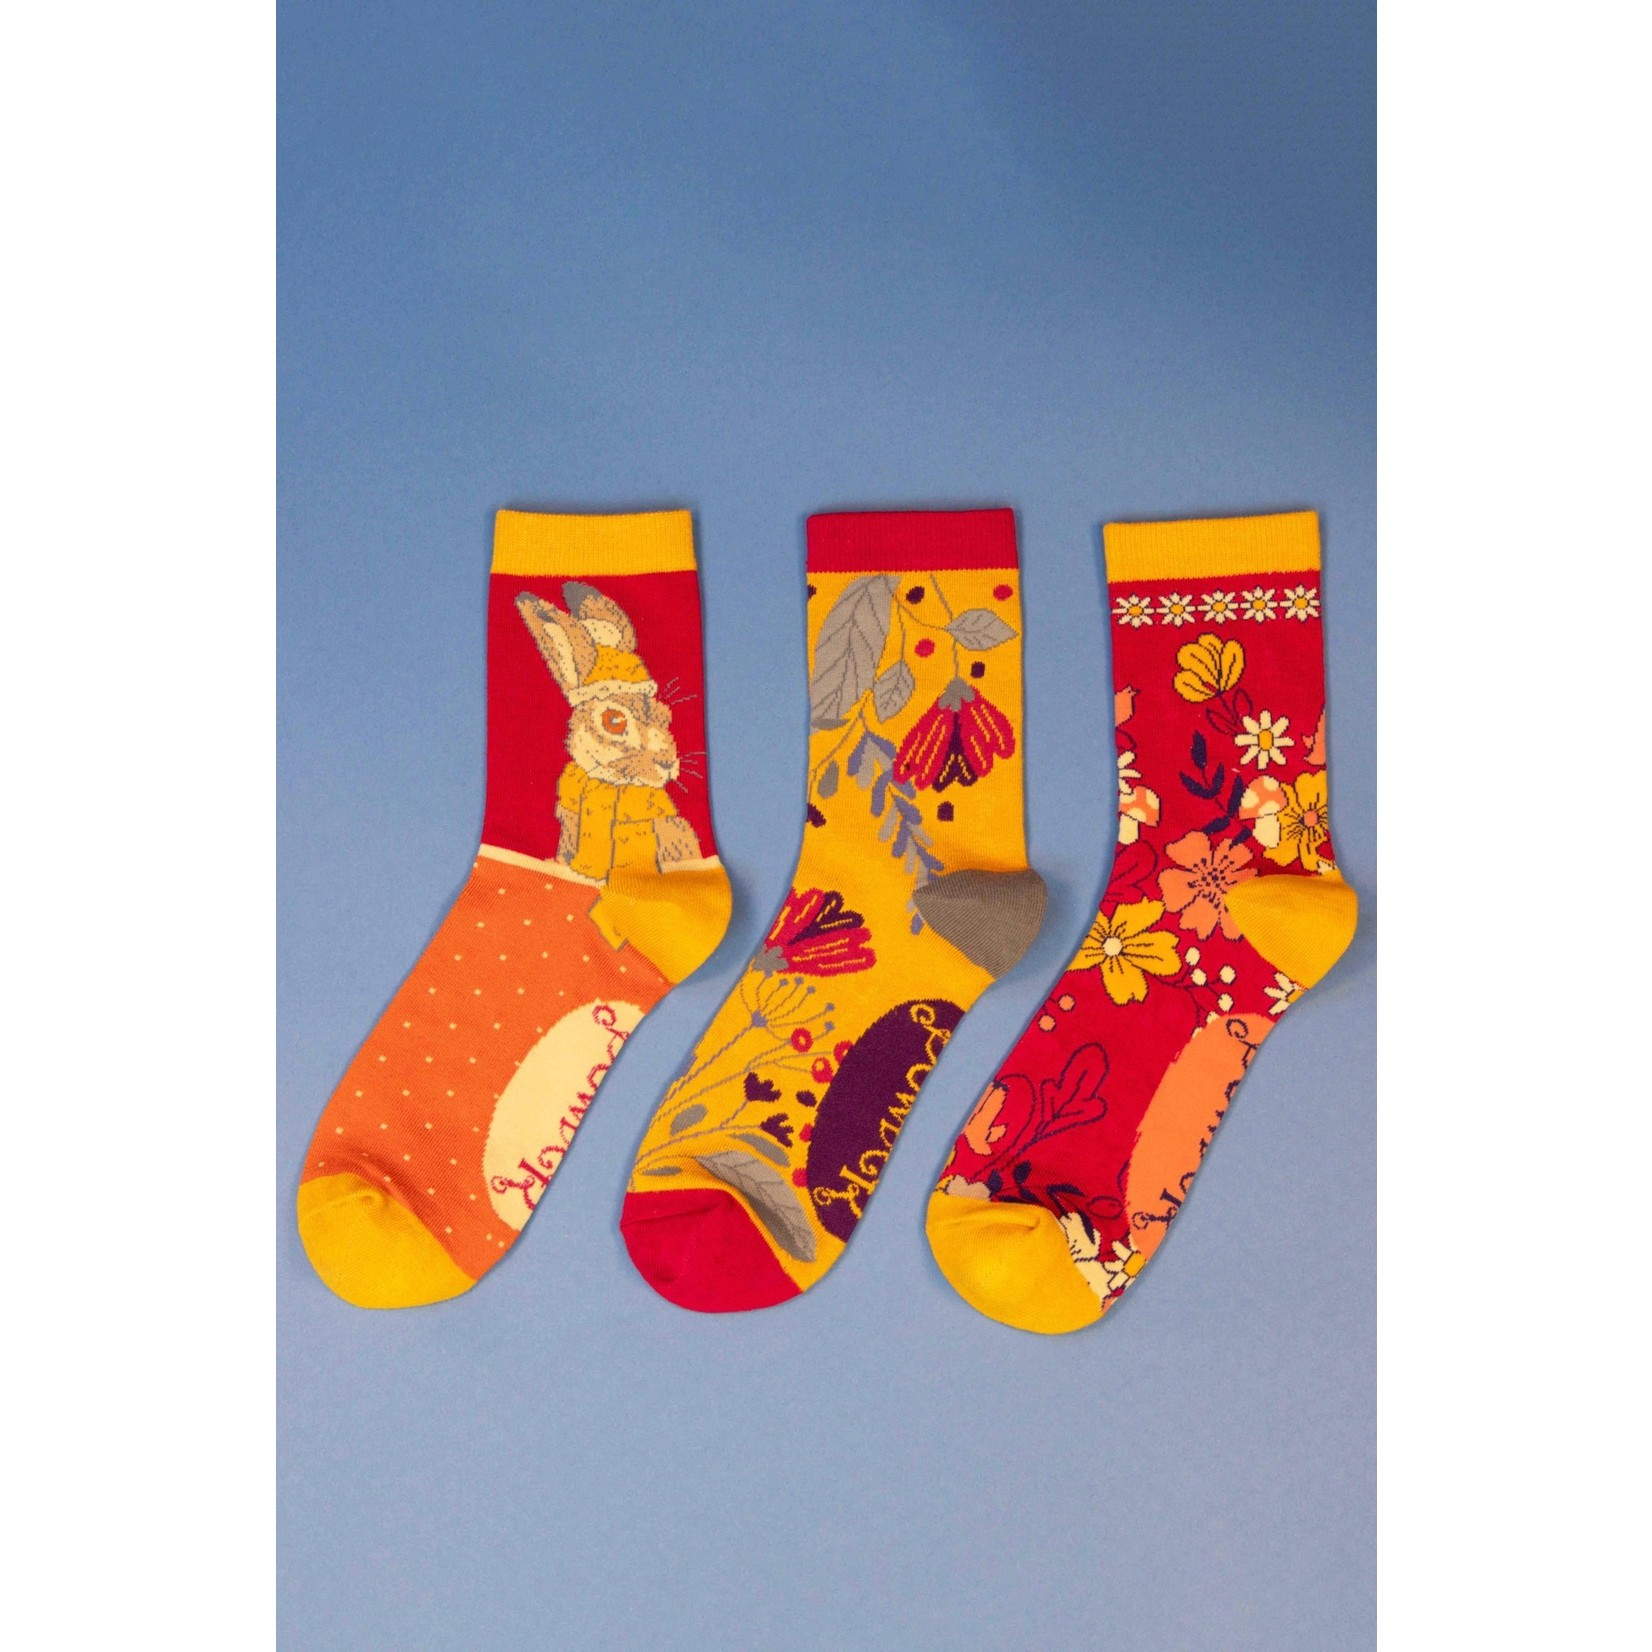 Powder Boxed Set of Socks in Delicate Floral Mustard